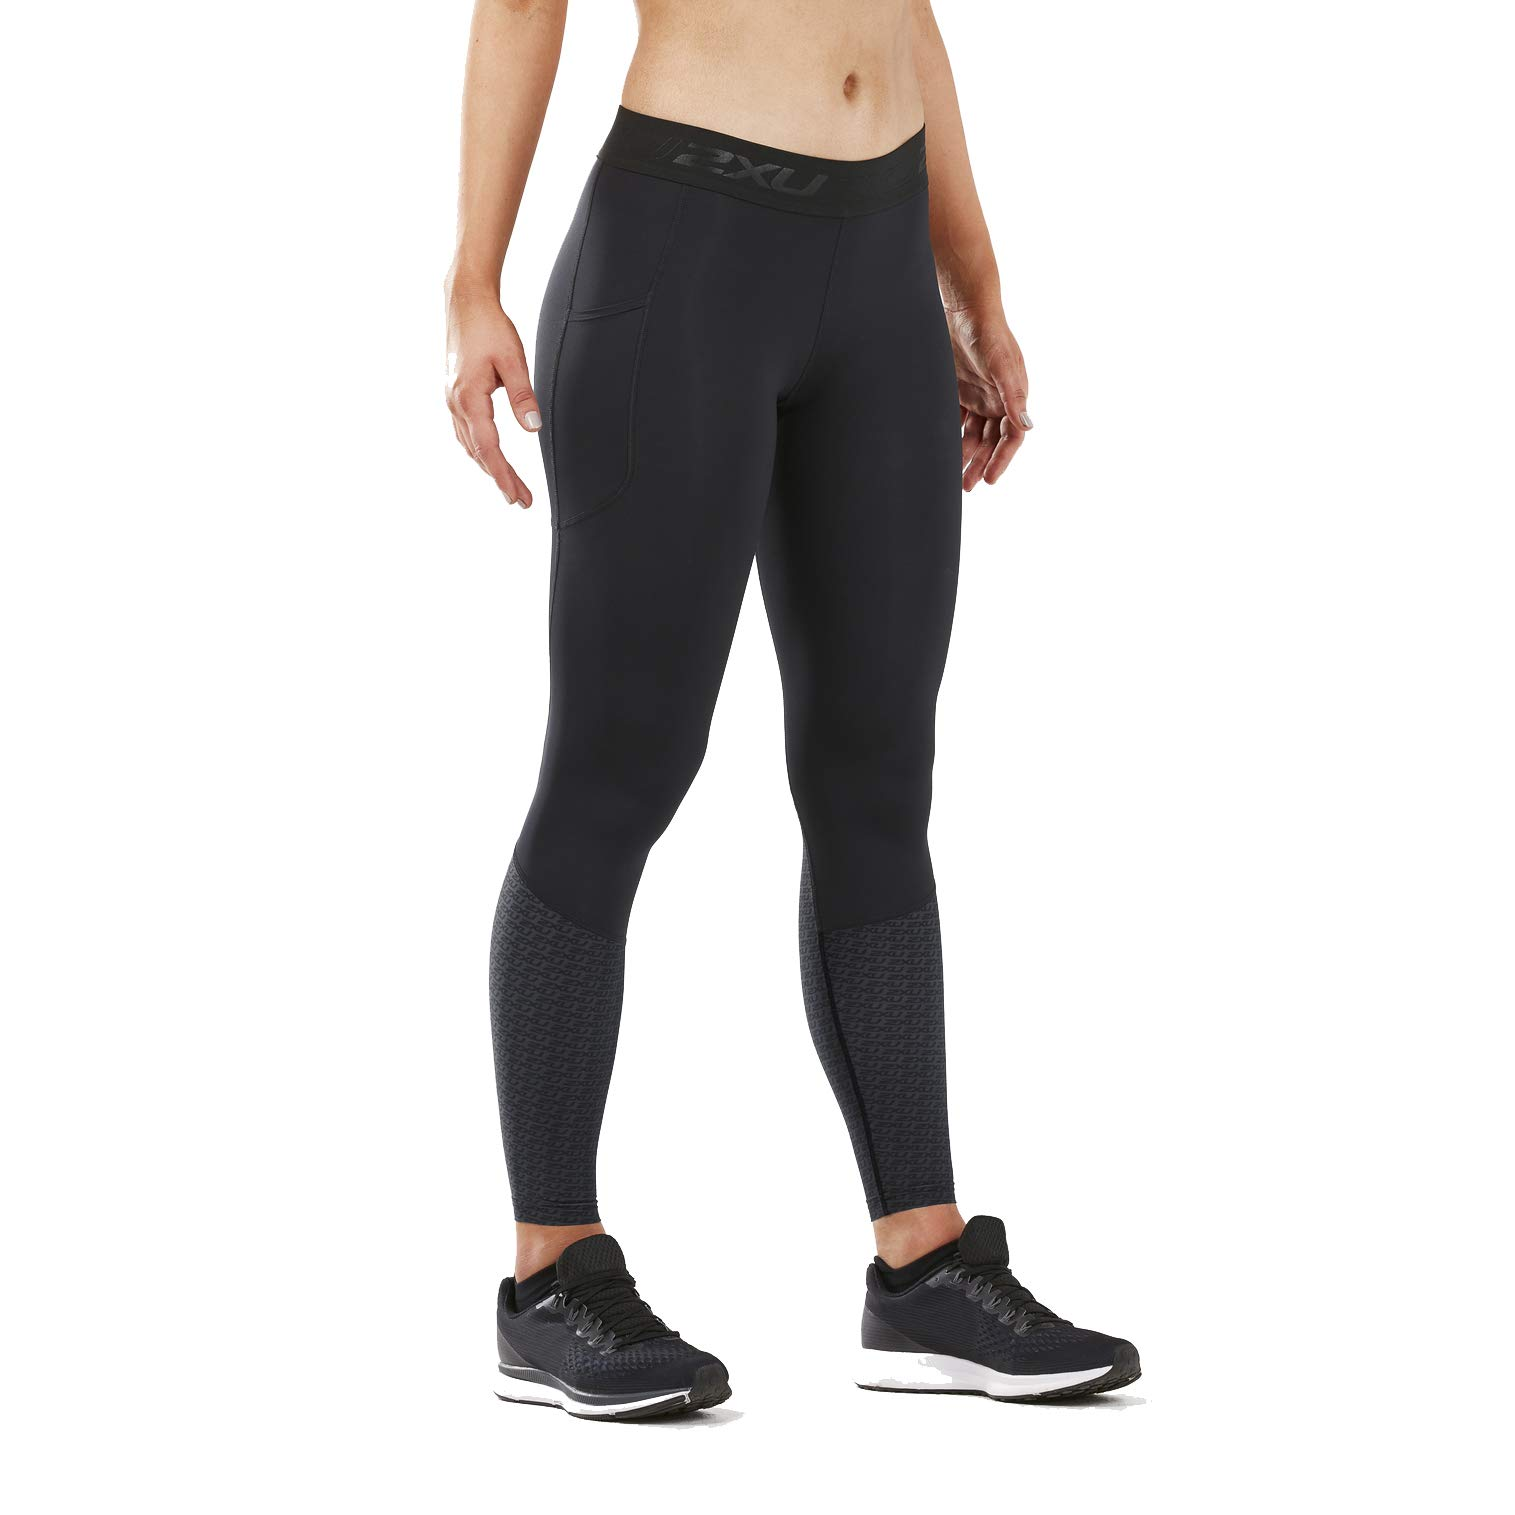 2XU Women's Accelerate Compression Tight Storage (Medium, Outer Space)